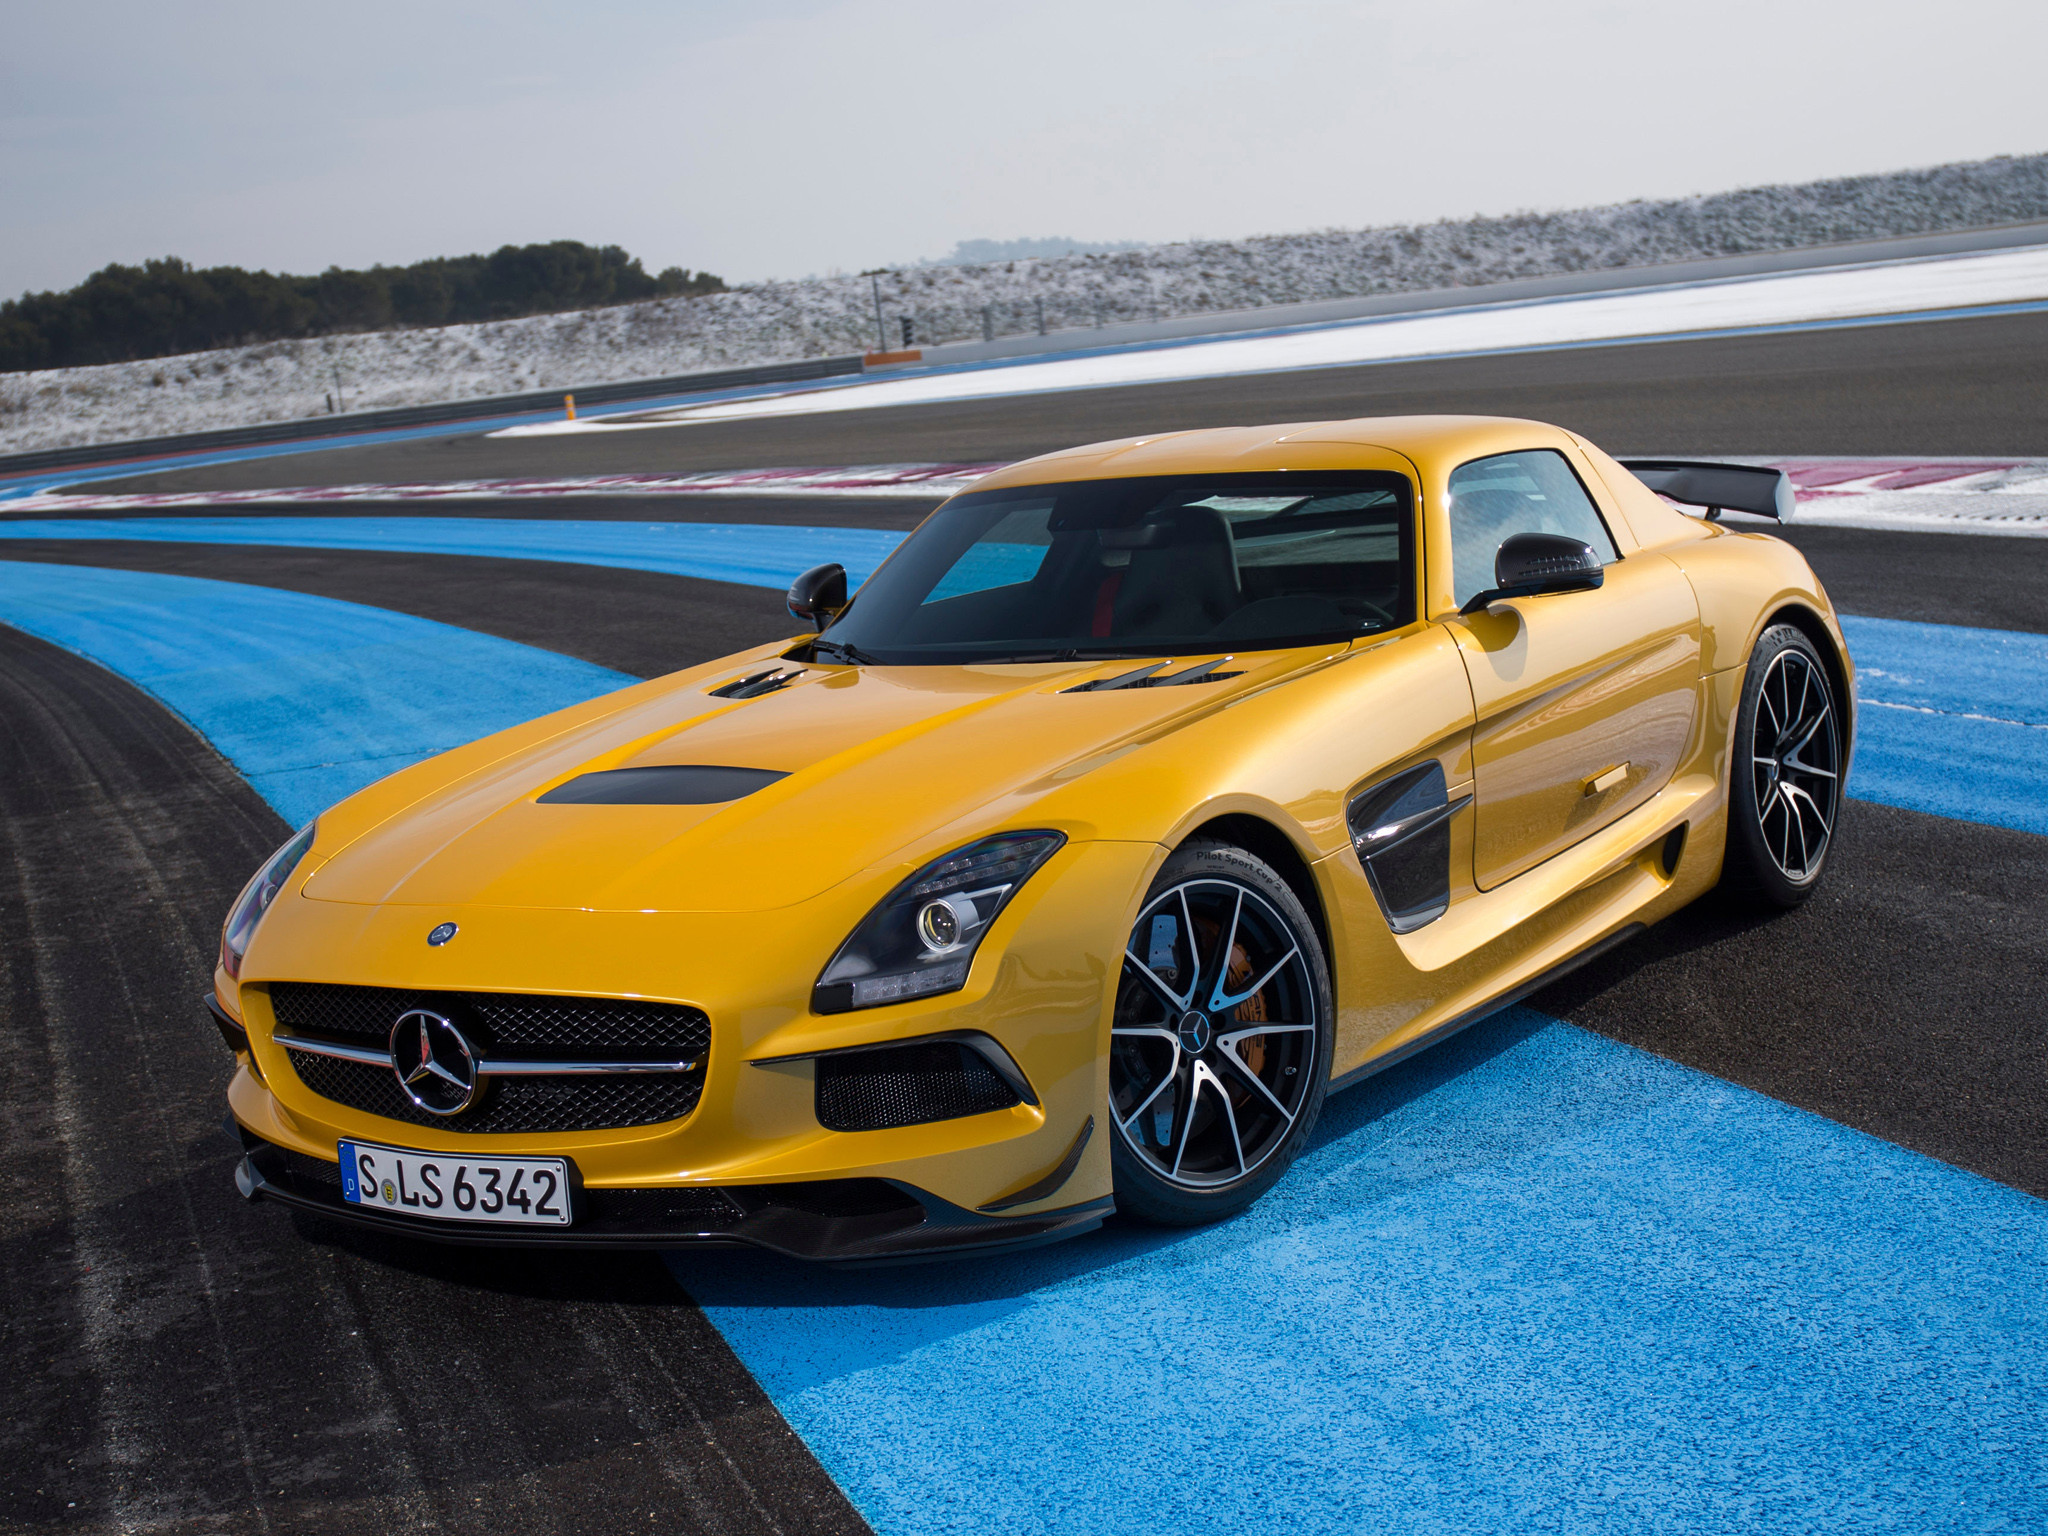 2048x1536 ... 2014 Mercedes Benz SLS AMG Black Series 16 Mercedes Benz Wallpaper   170320 WallpaperUP ...